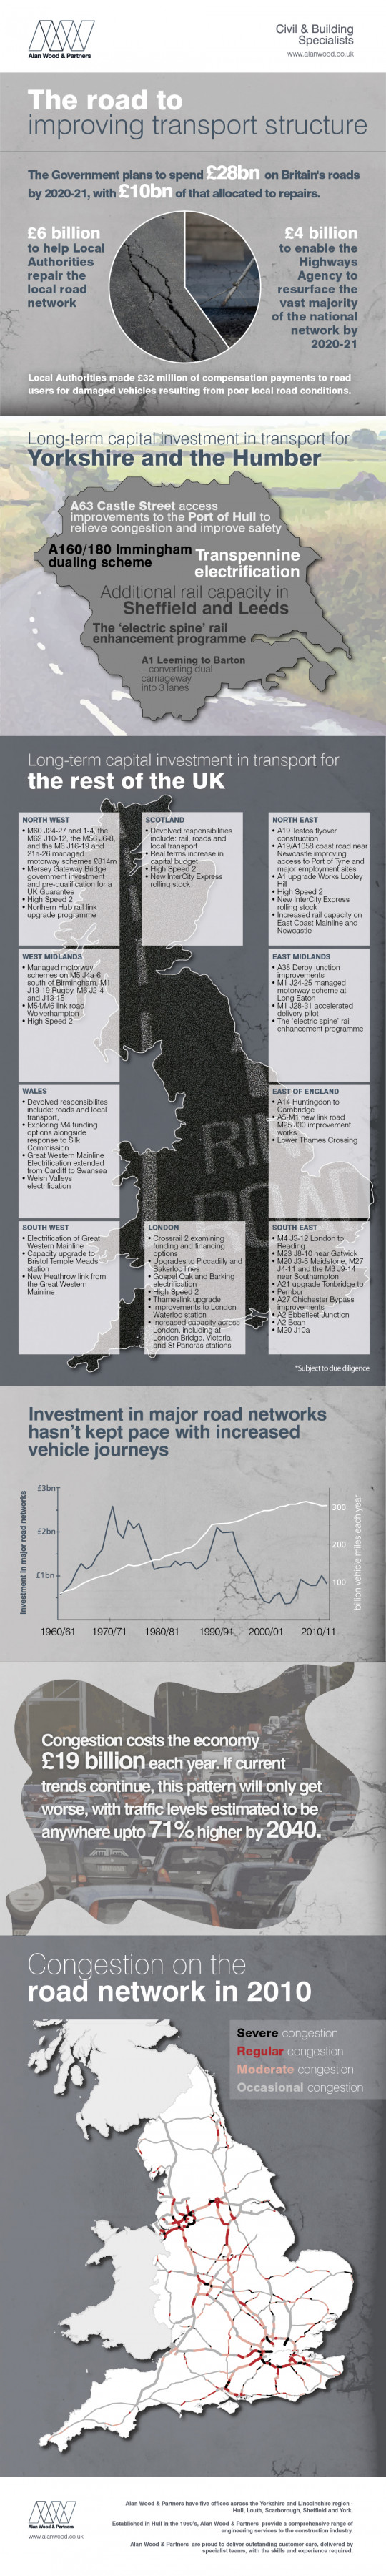 The road to improving transport structure